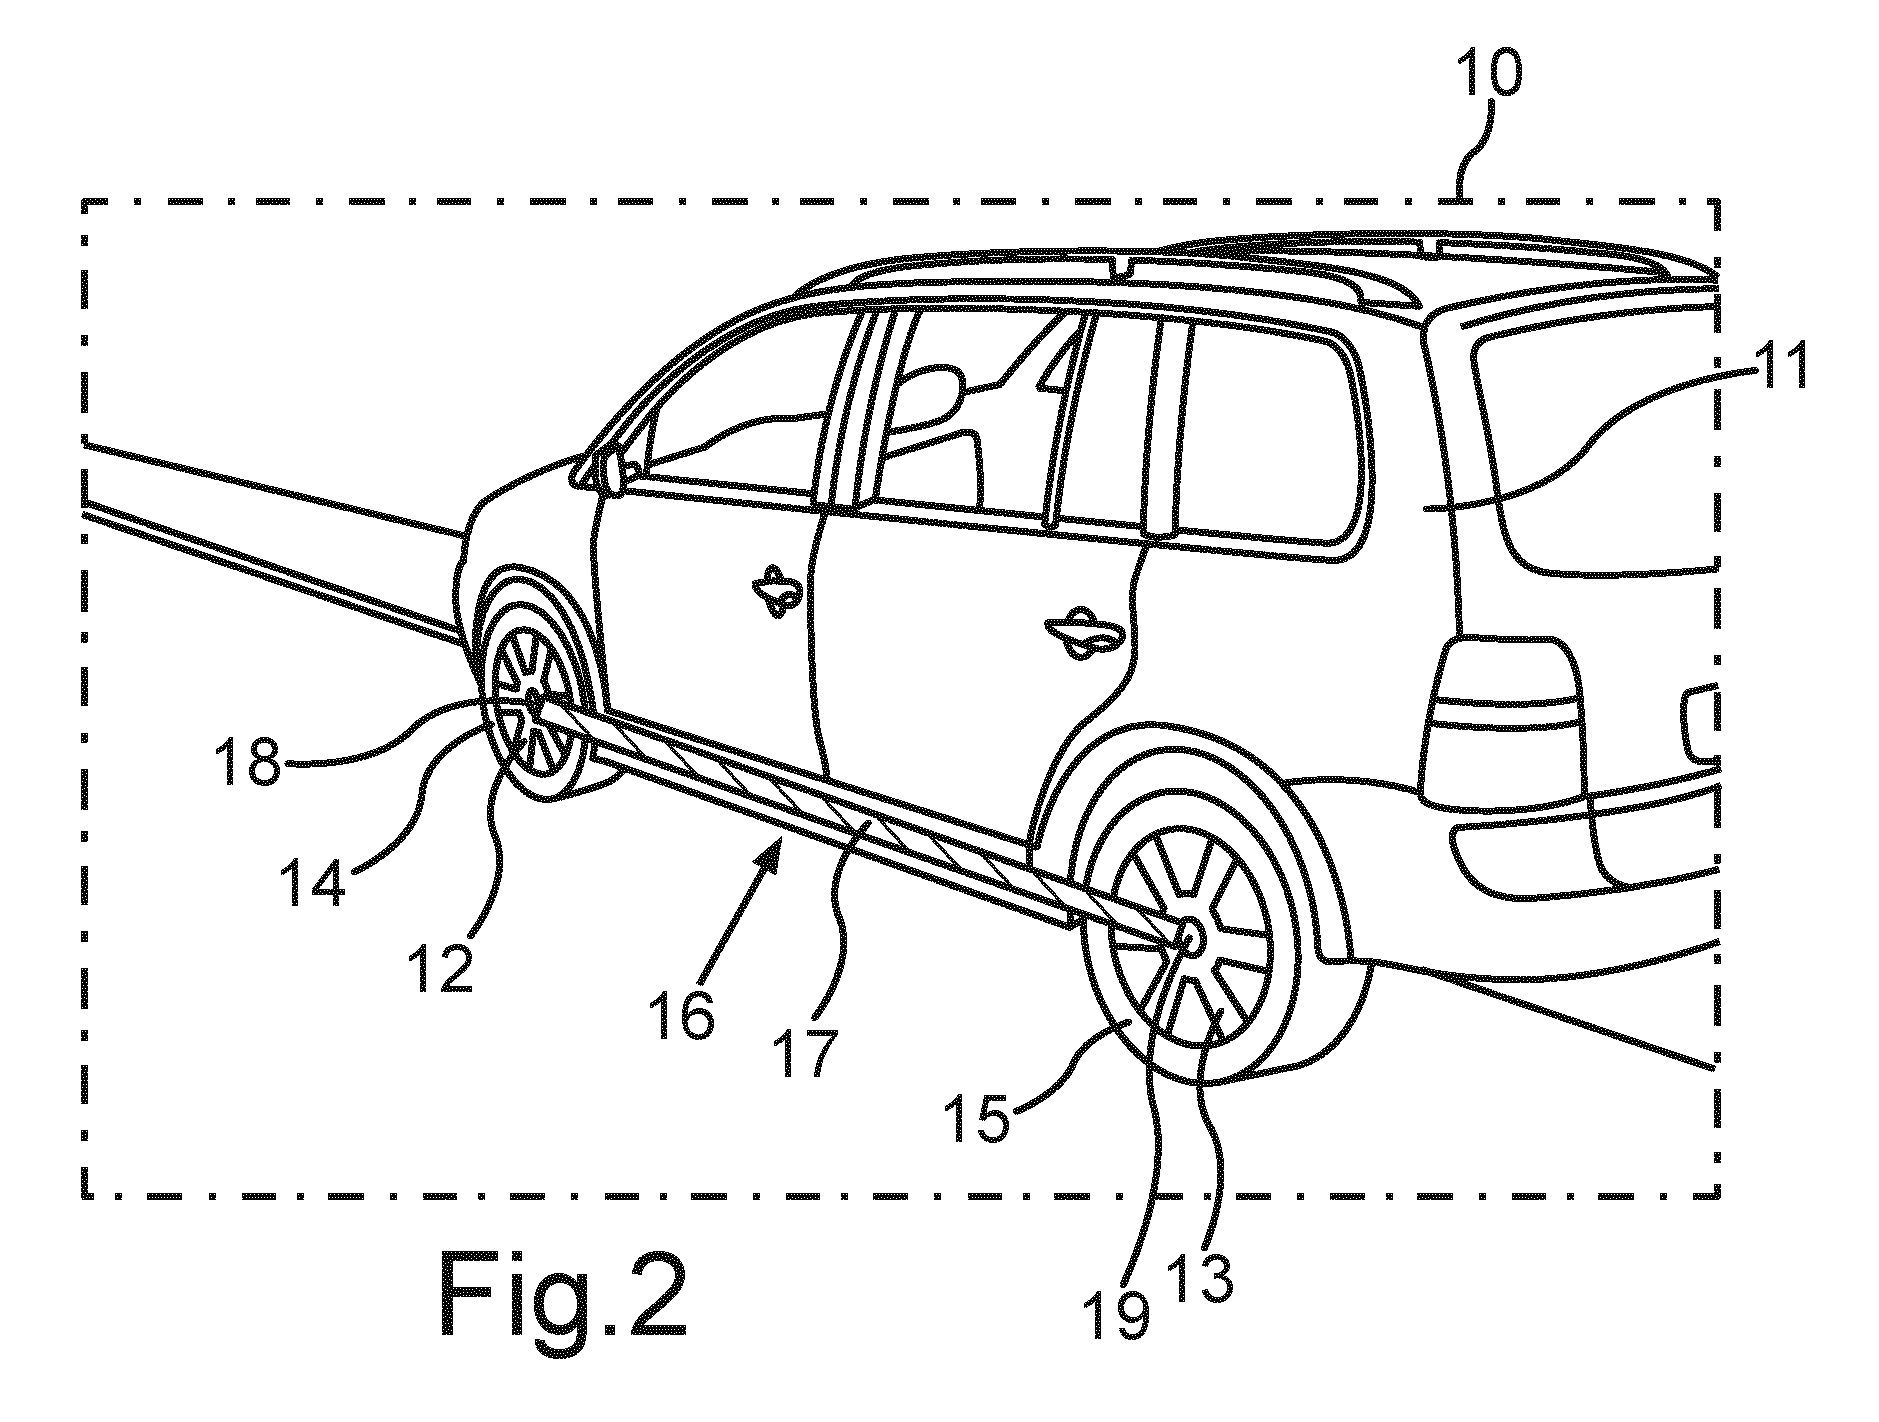 WO2012084564A1 METHOD FOR OPERATING A DRIVER ASSISTANCE SYSTEM IN A MOTOR VEHICLE, DRIVER ASSISTANCE SYSTEM AND MOTOR VEHICLE